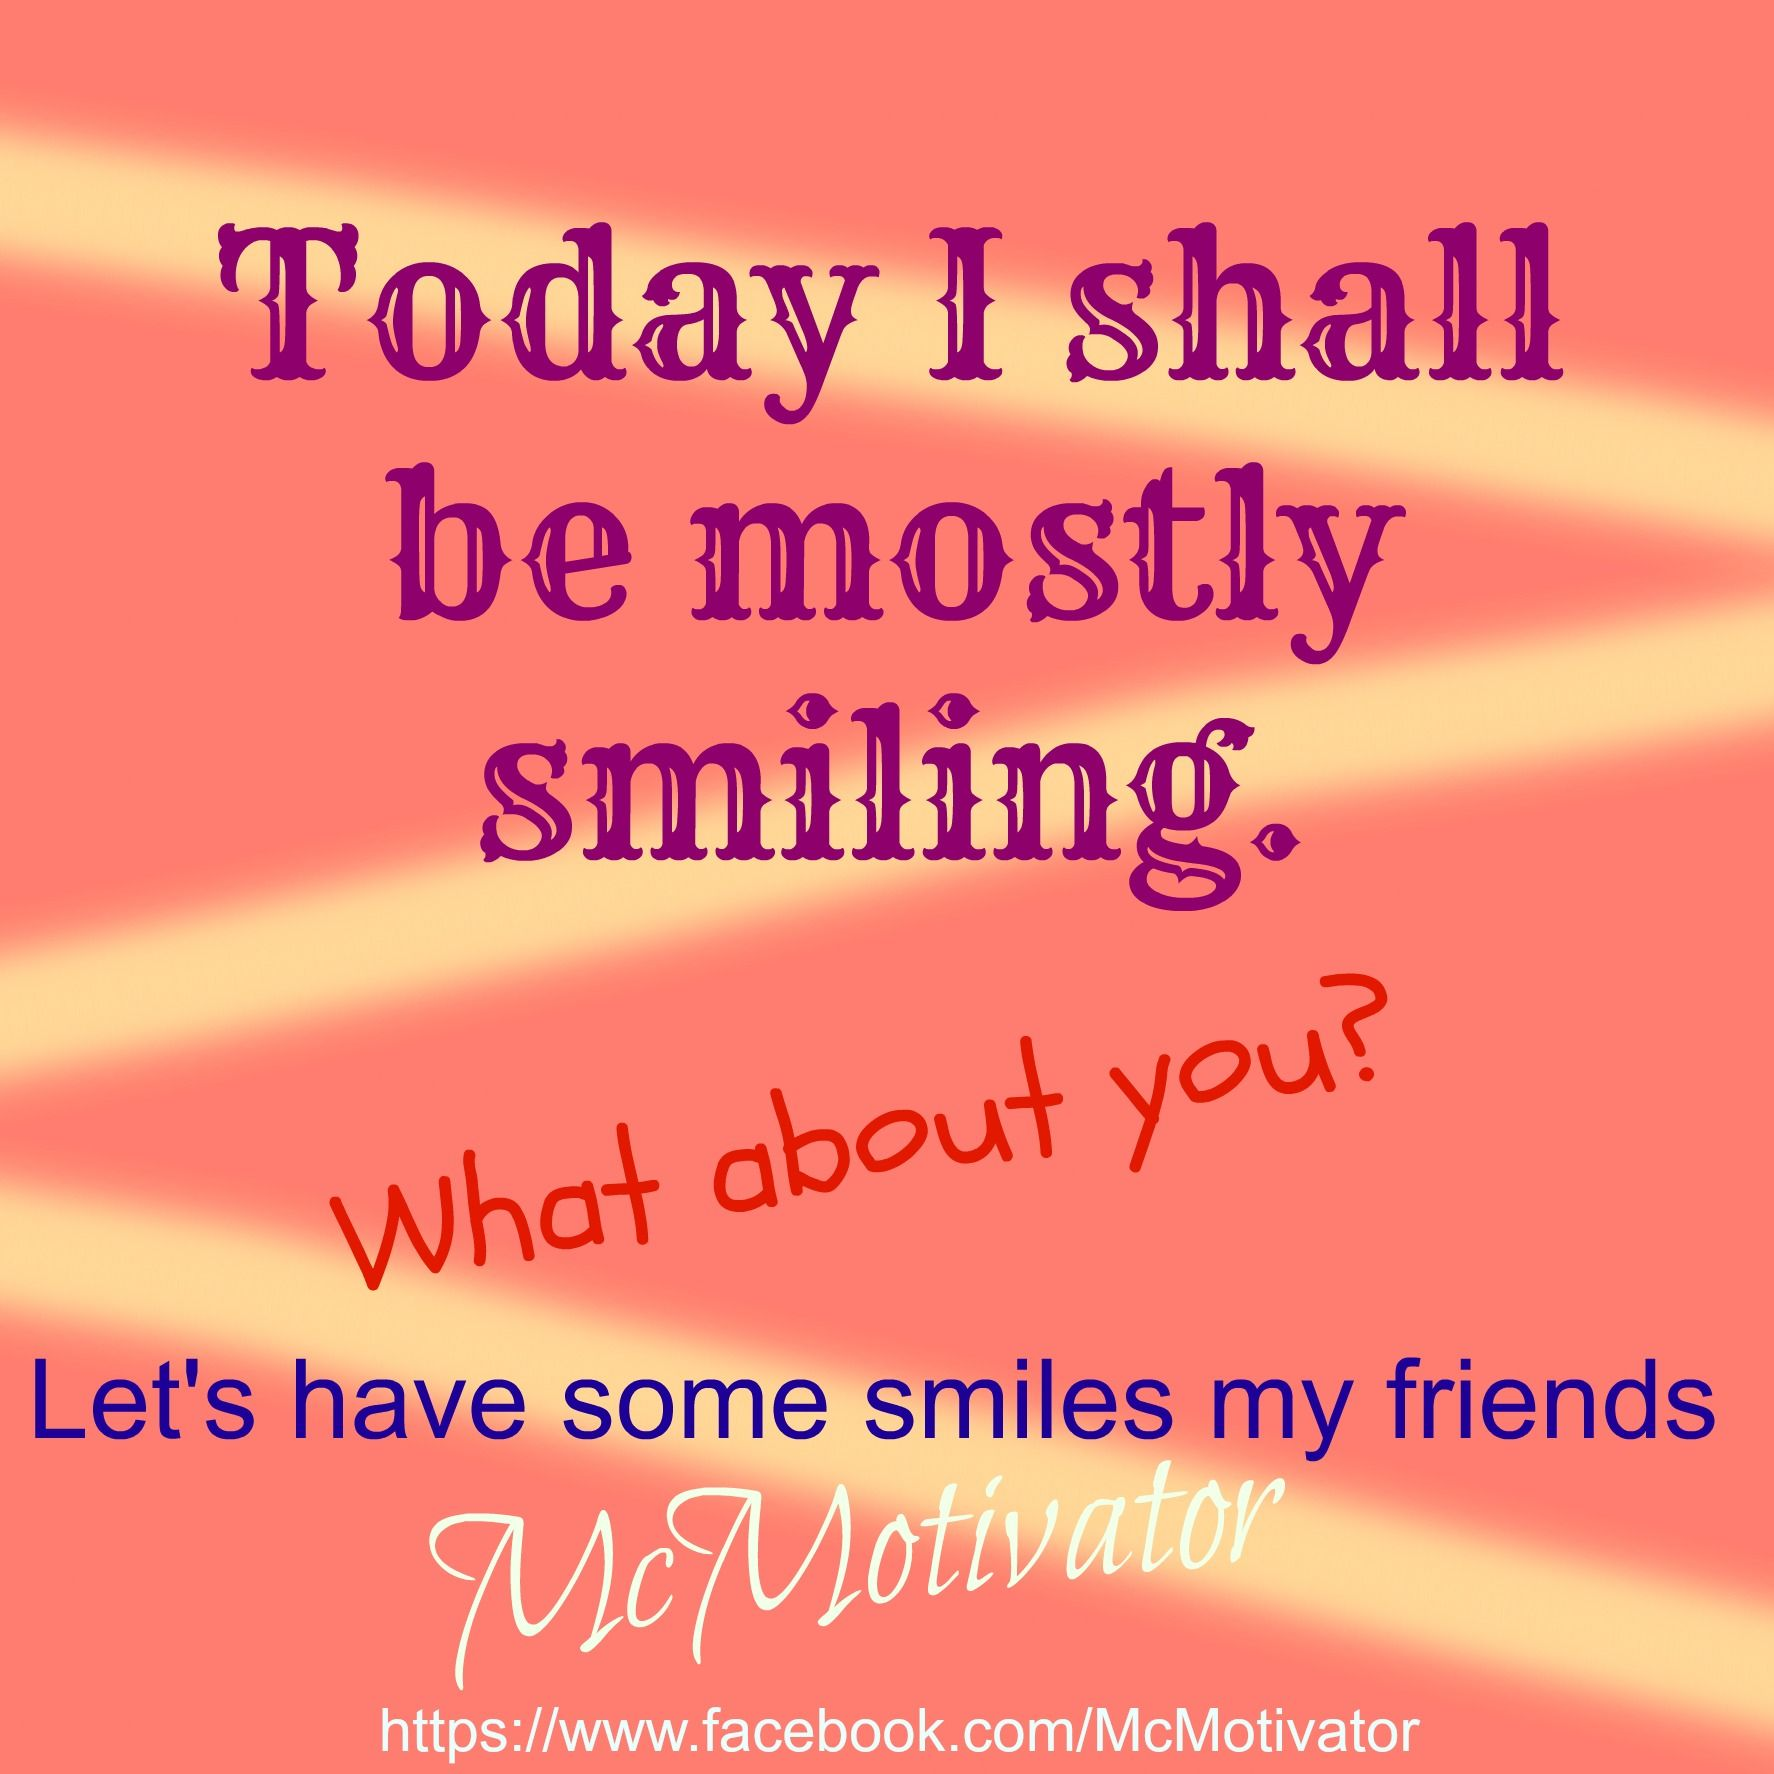 Quotes About Smiles Today I Shall Be Mostly Smiling.what About You Let's Have Some